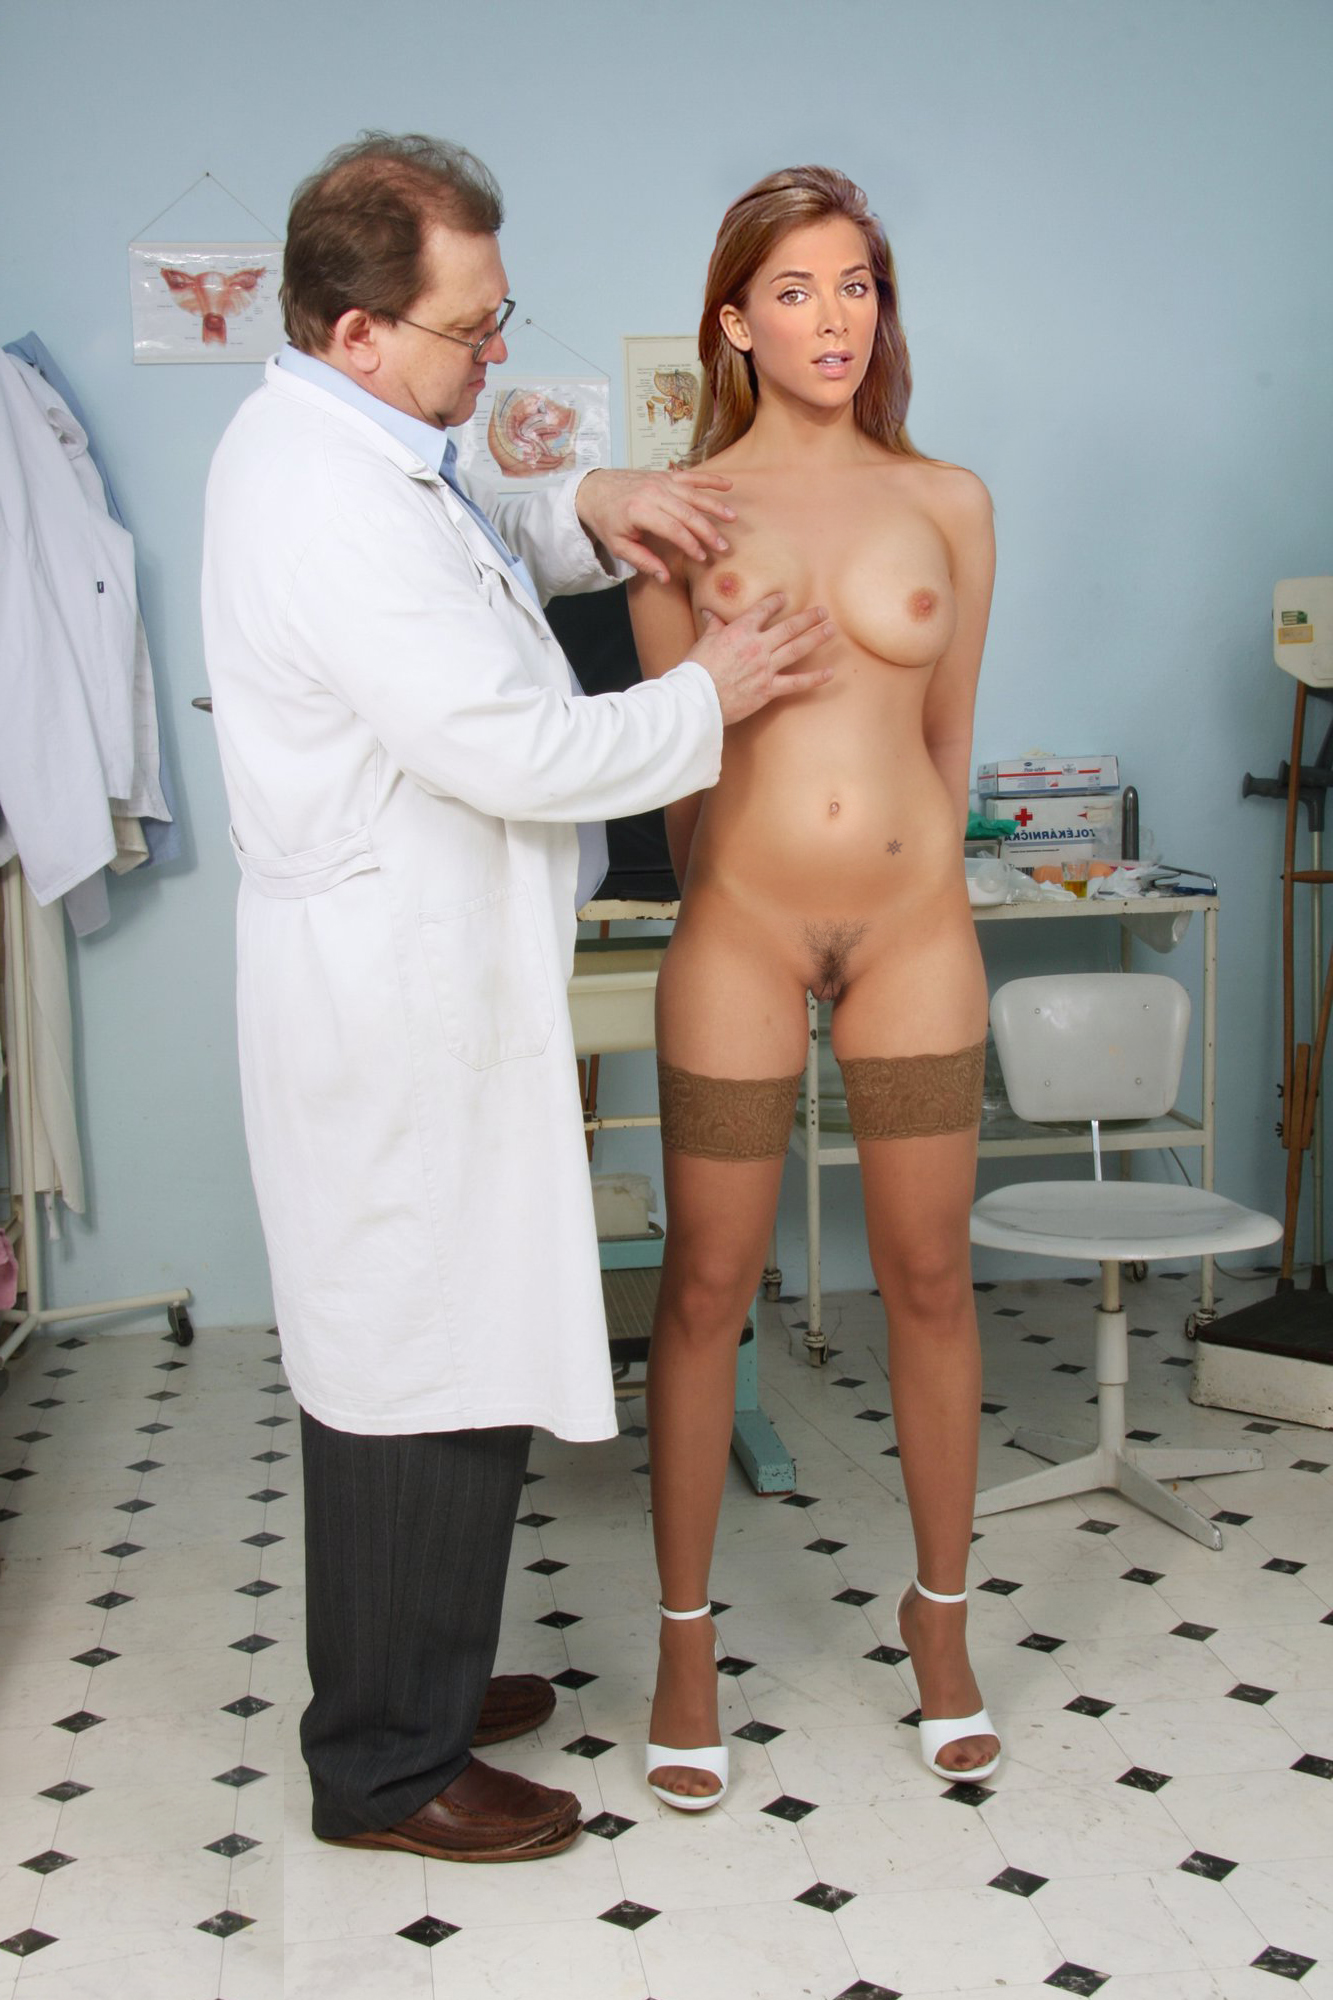 Doctor nd patient sex pic nude